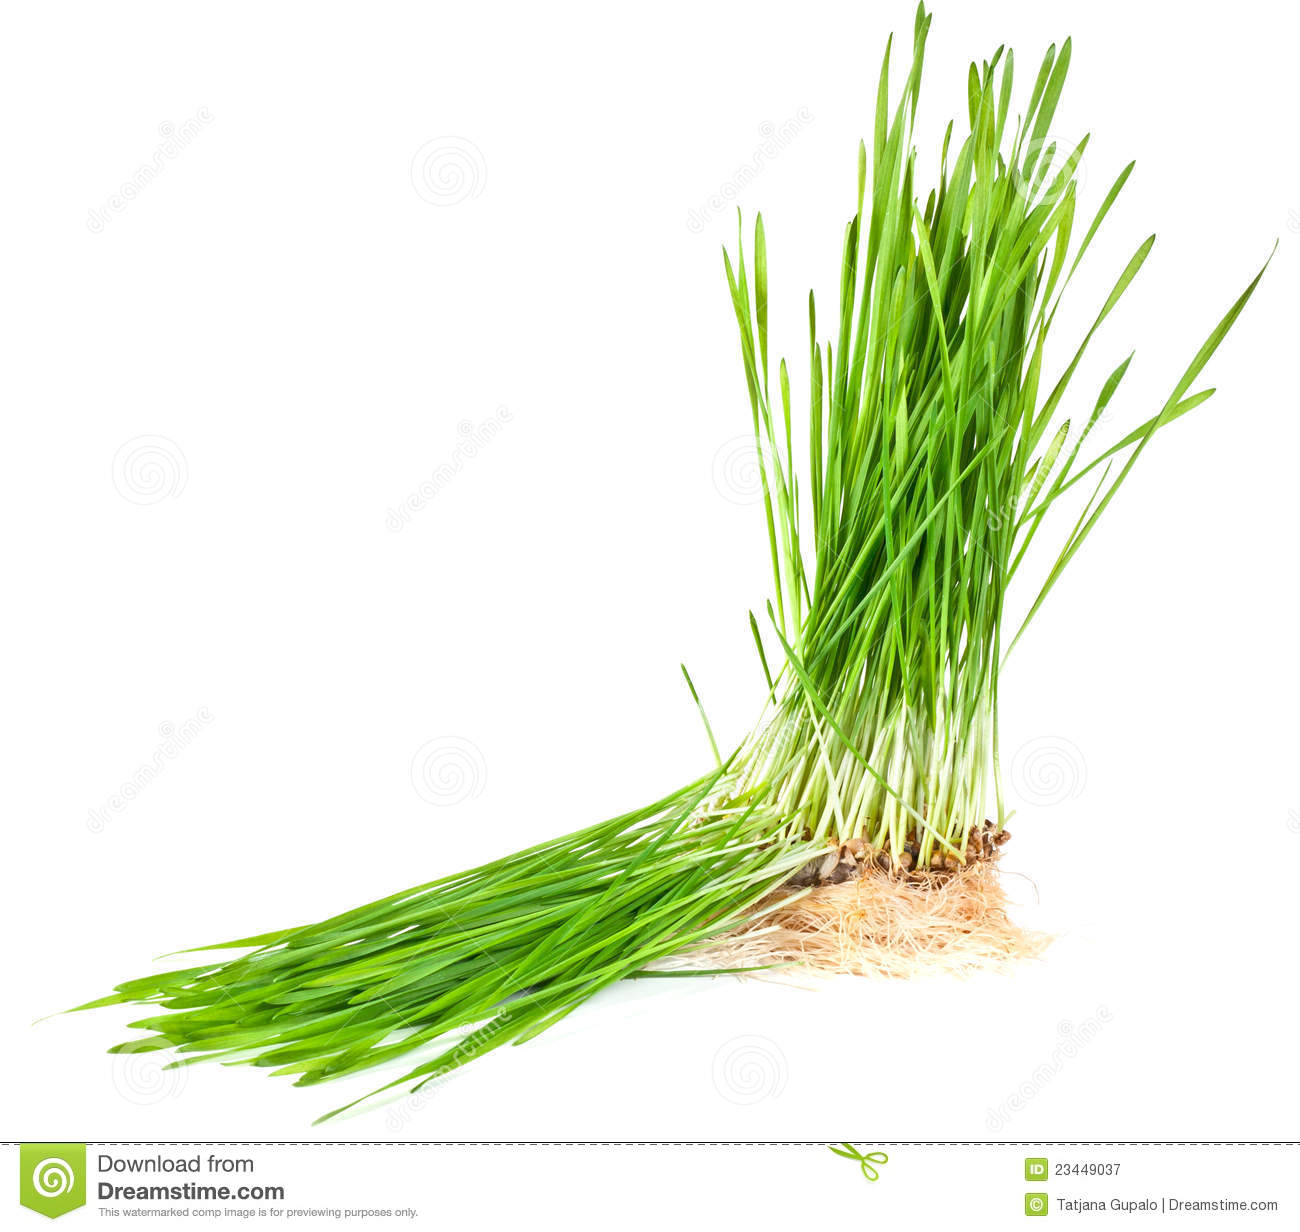 Clipart Grass With Roots.